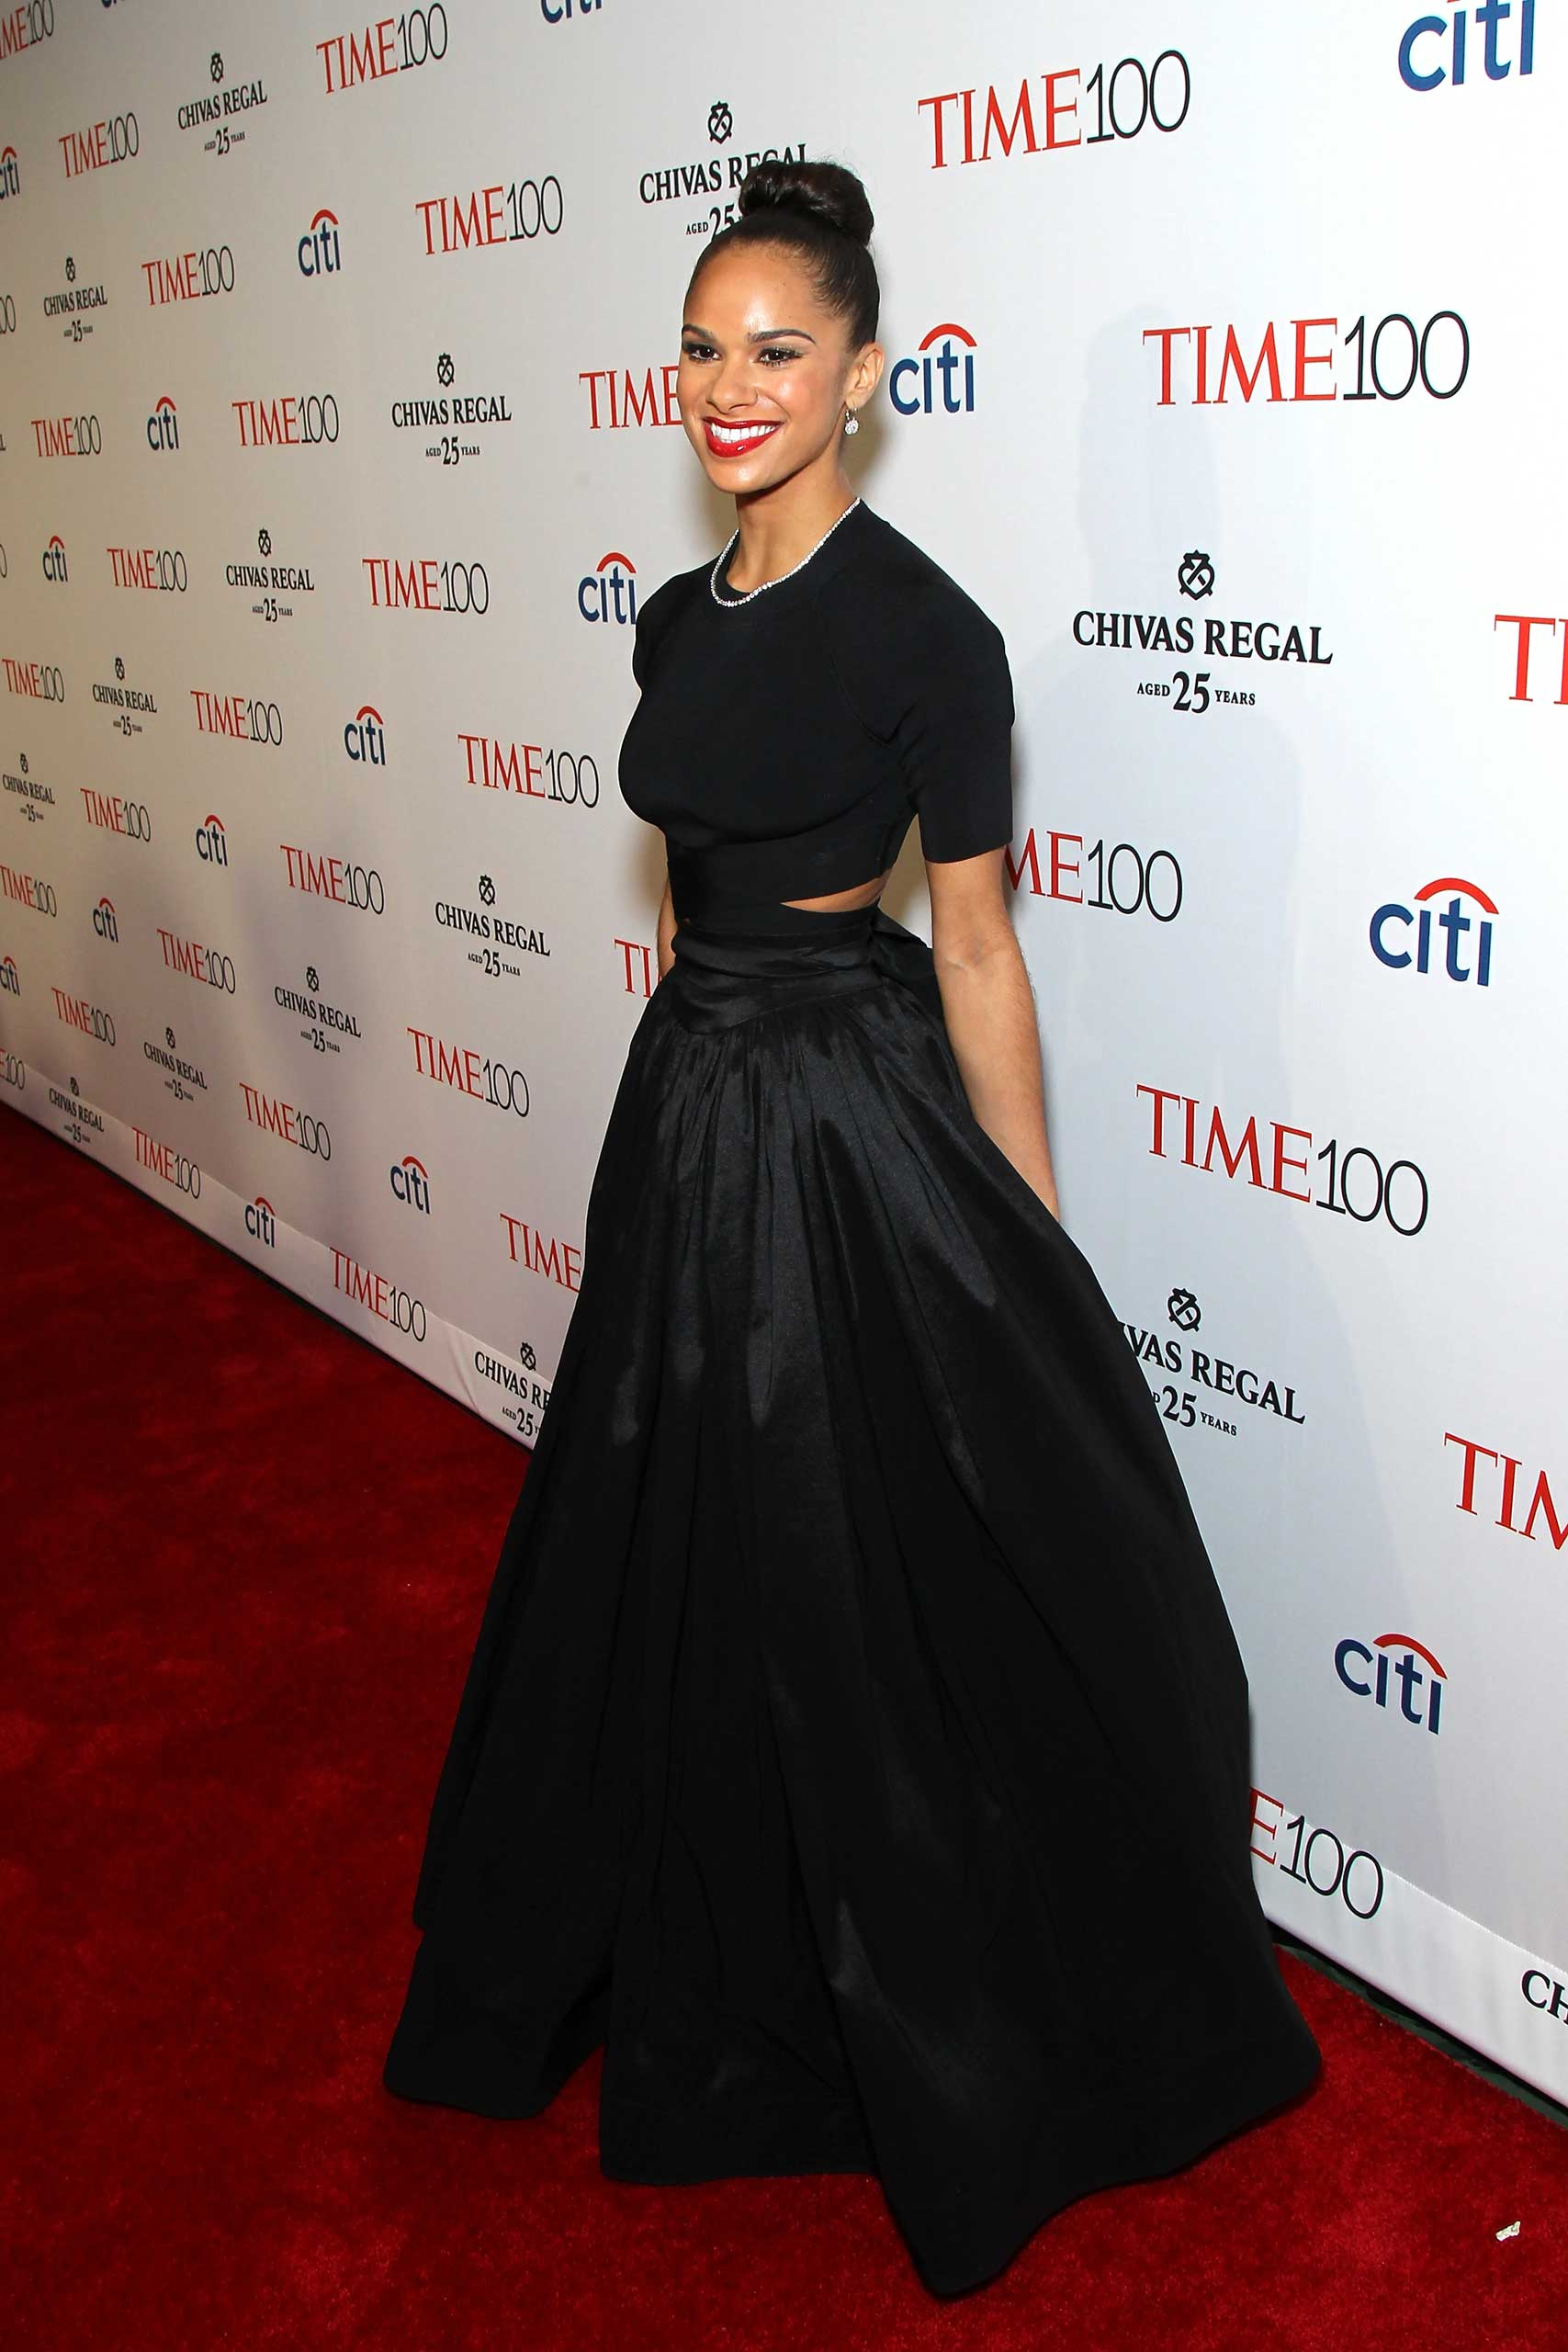 Misty Copeland attends the TIME 100 Gala at Jazz at Lincoln Center in New York City on Apr. 21, 2015.